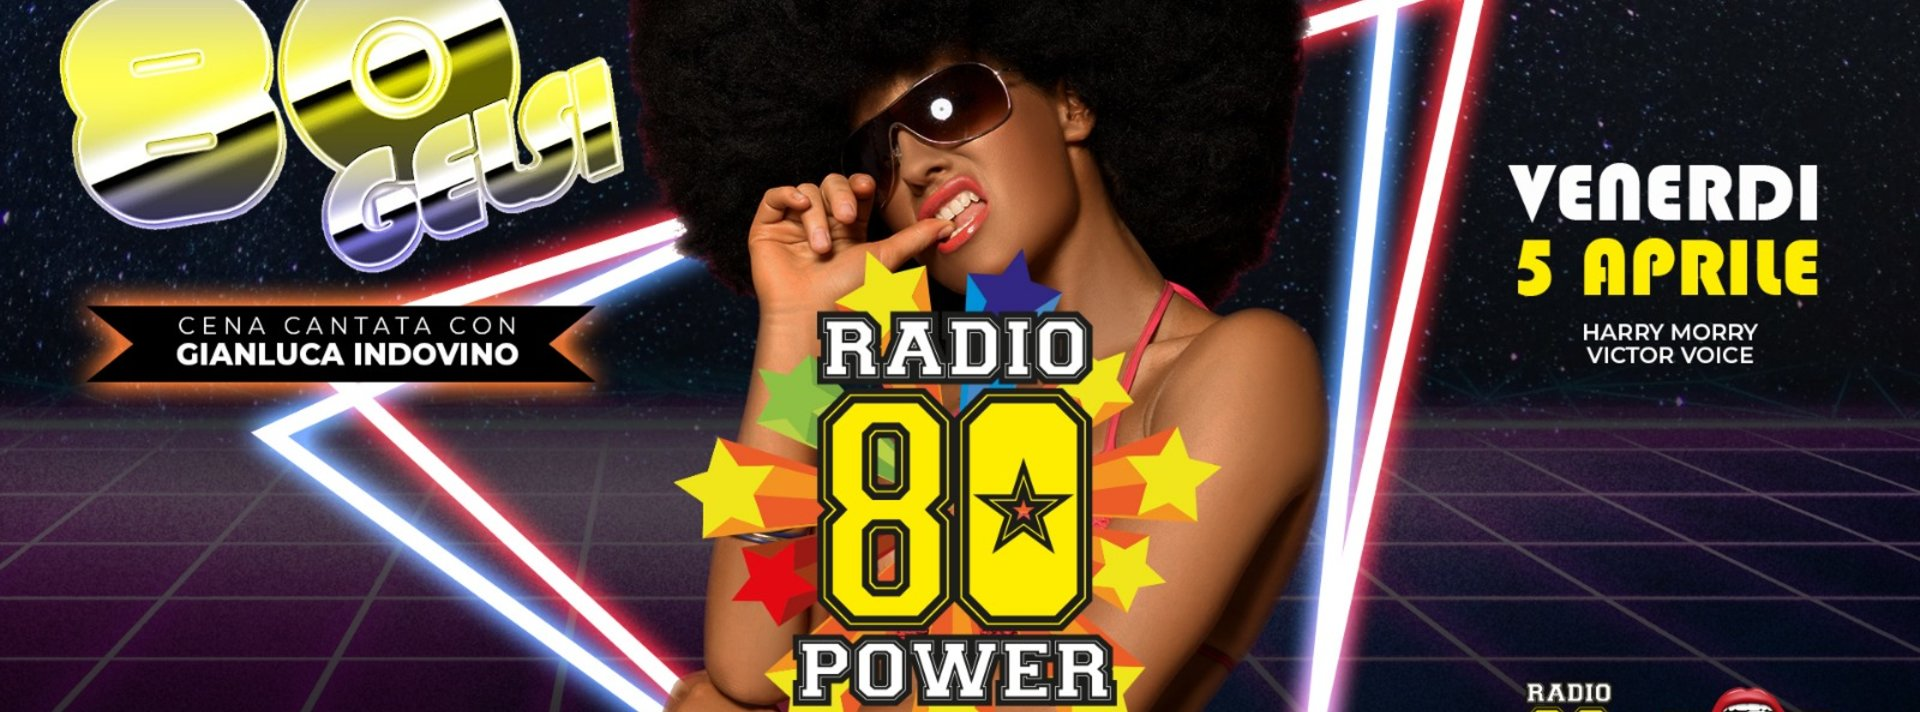 Radio 80 Power ai Gelsi